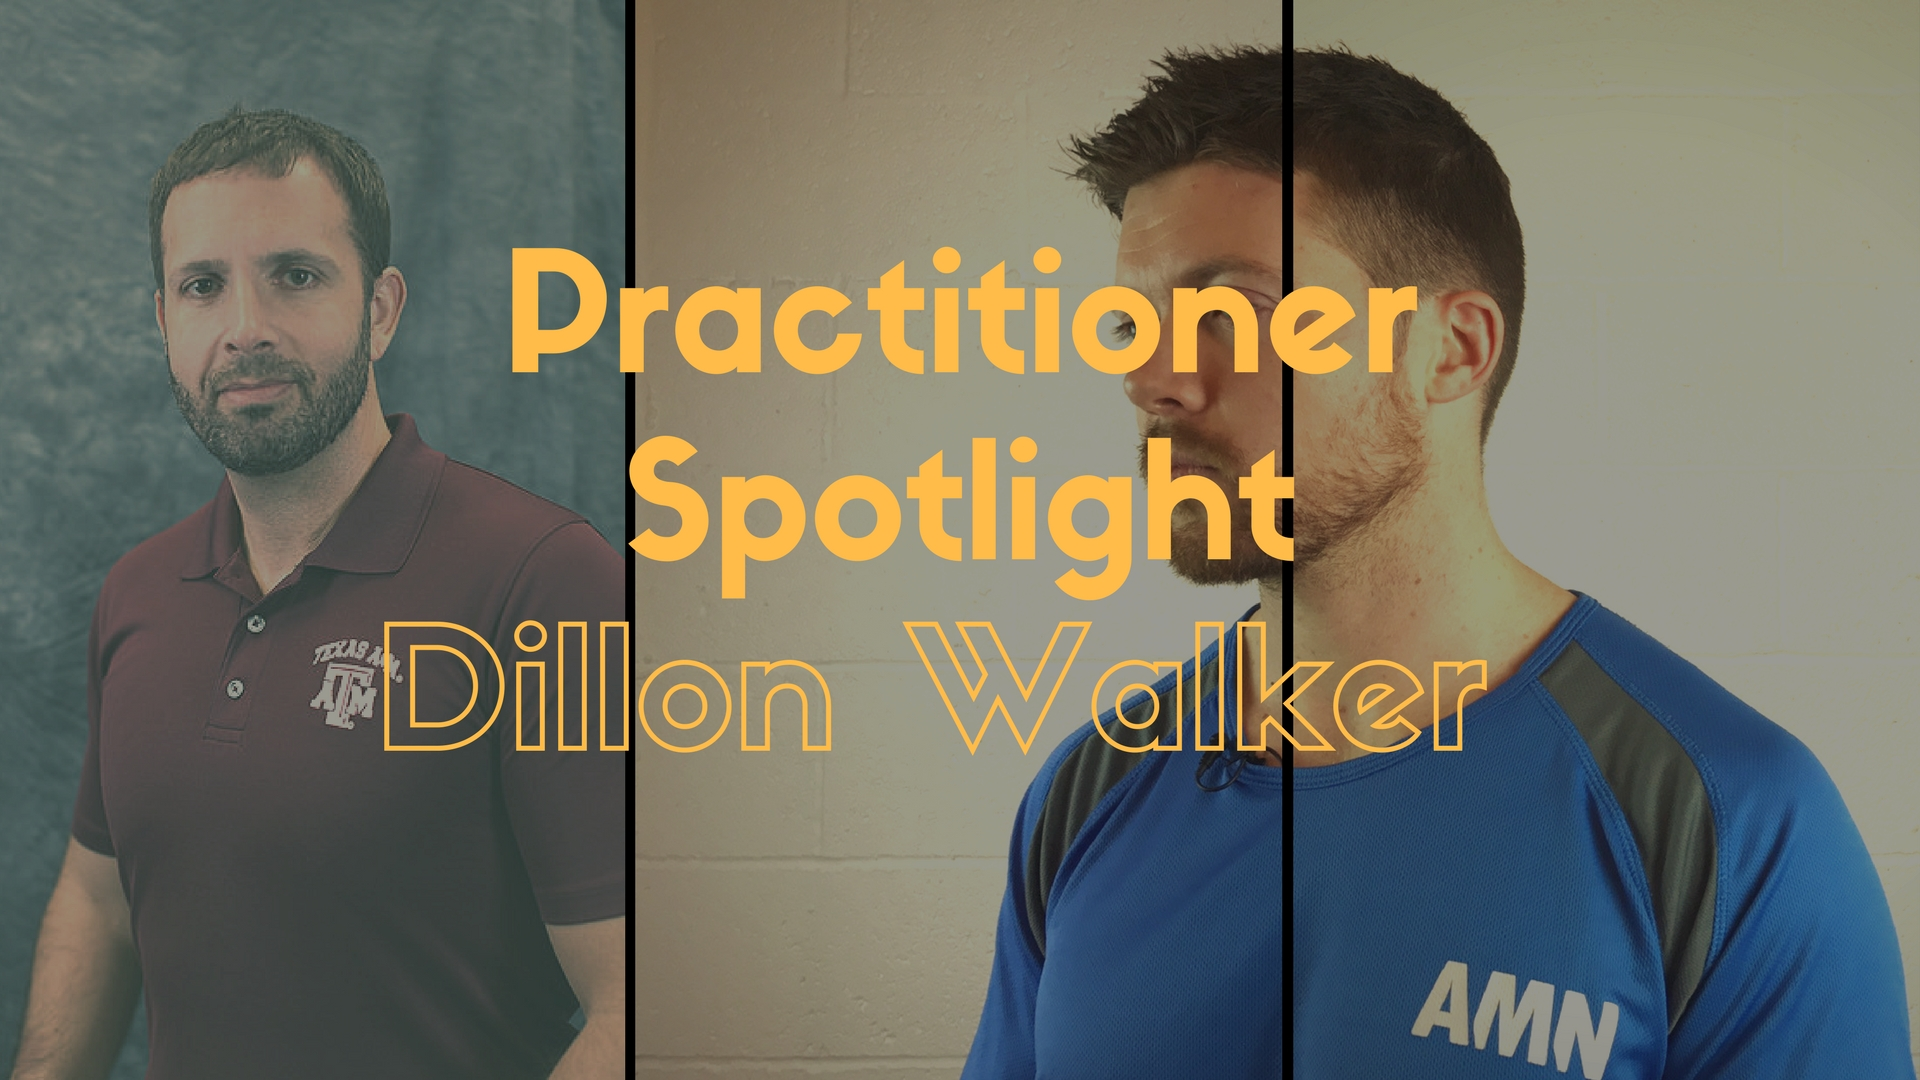 dillon-walker-practitioner-spotlight